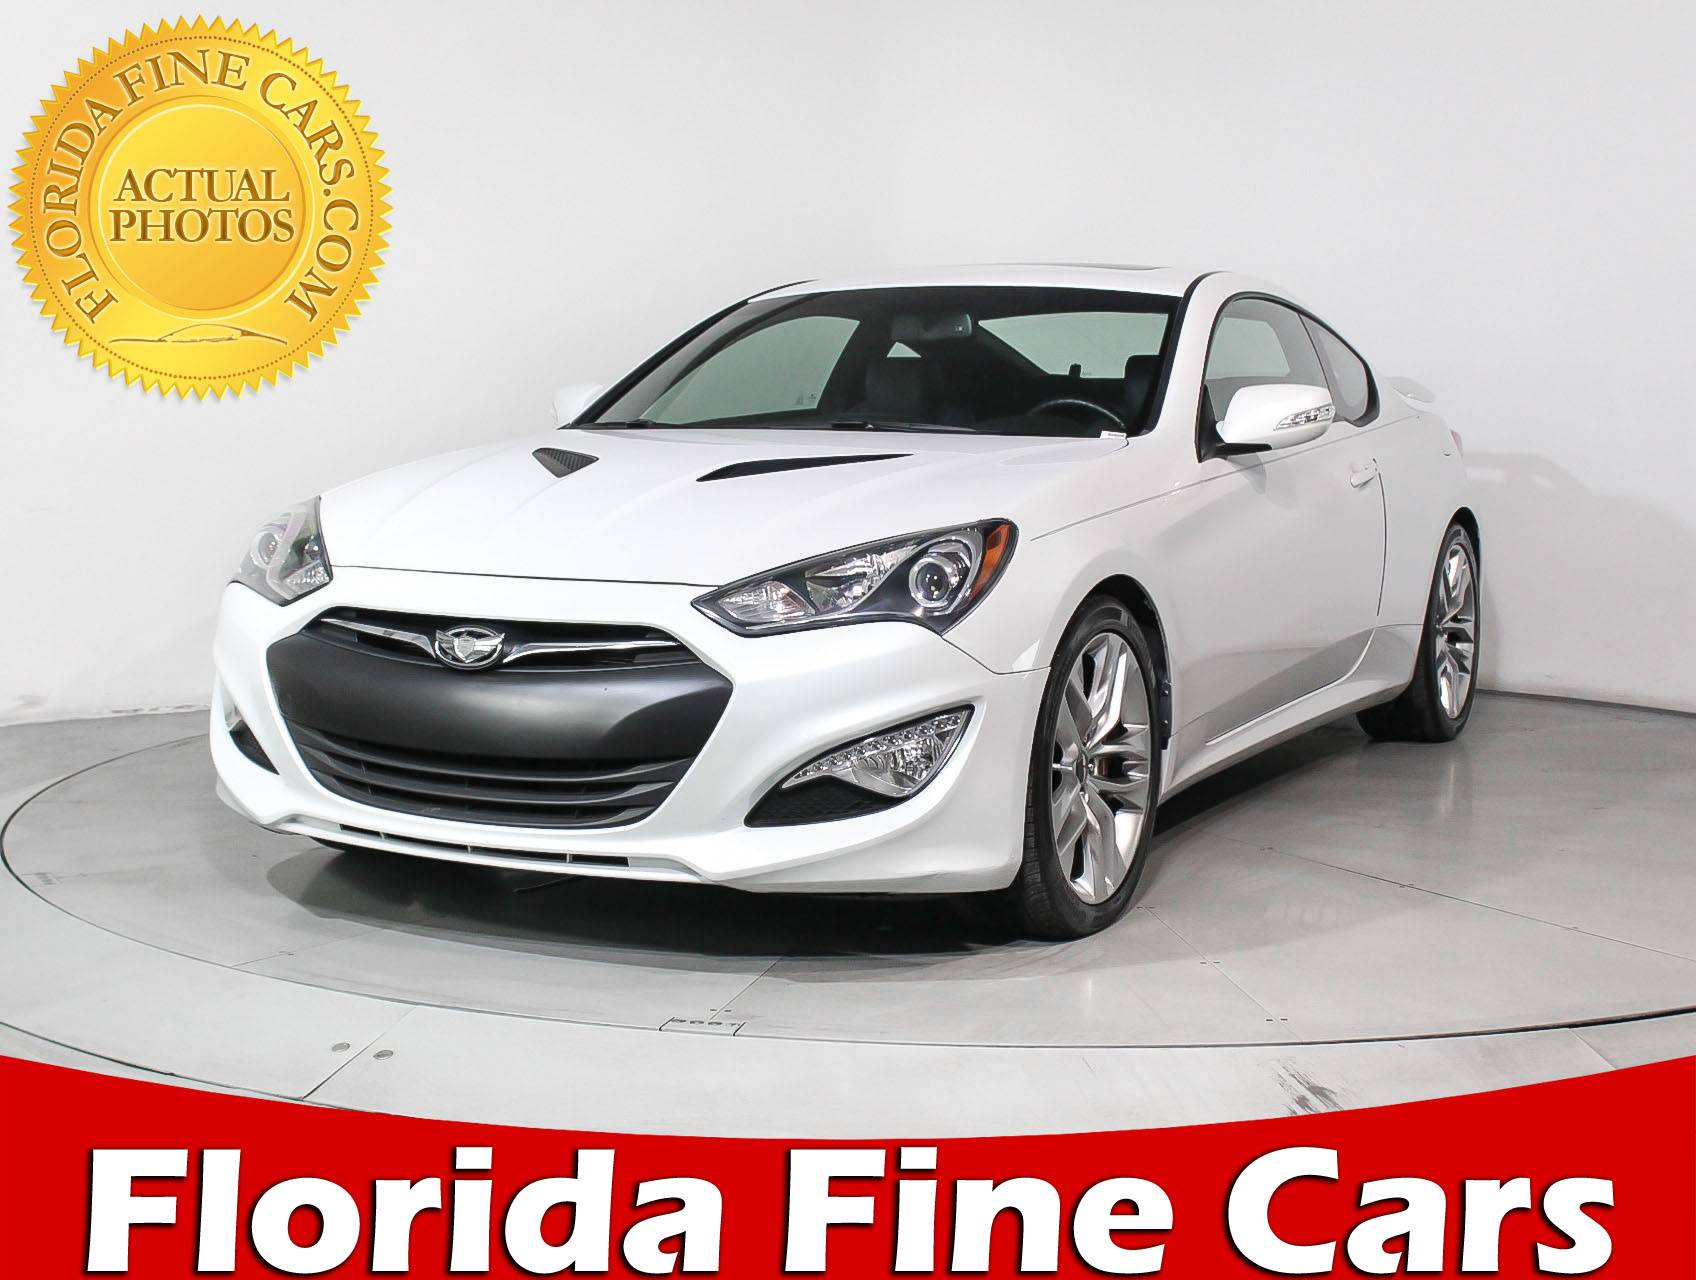 Used 2013 HYUNDAI GENESIS COUPE Track Sedan for sale in MIAMI, FL ...